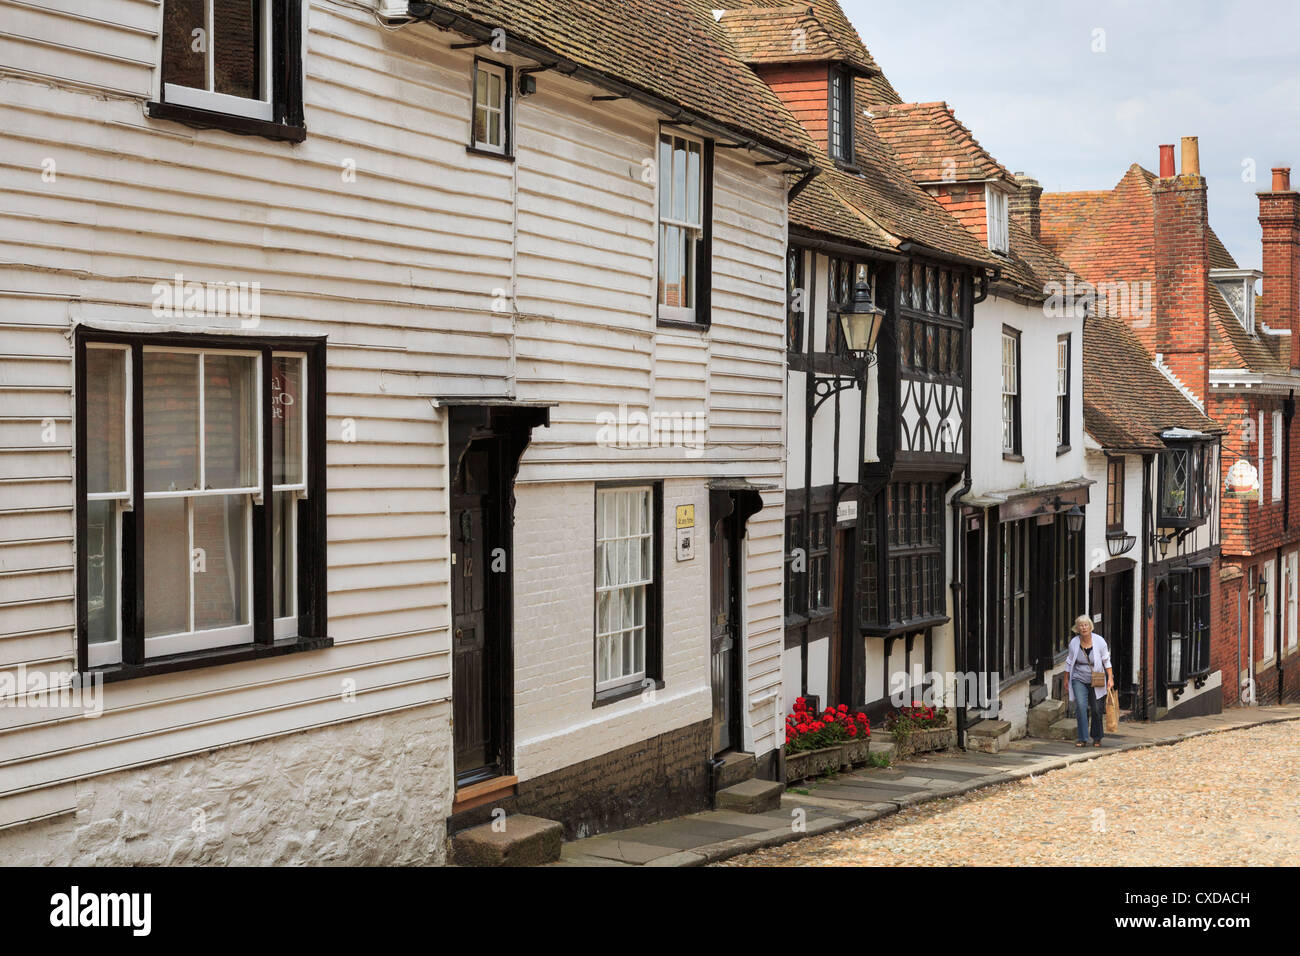 Cobbled street with white clapboard and timbered buildings in medieval town of Rye, East Sussex, England, UK, Britain - Stock Image